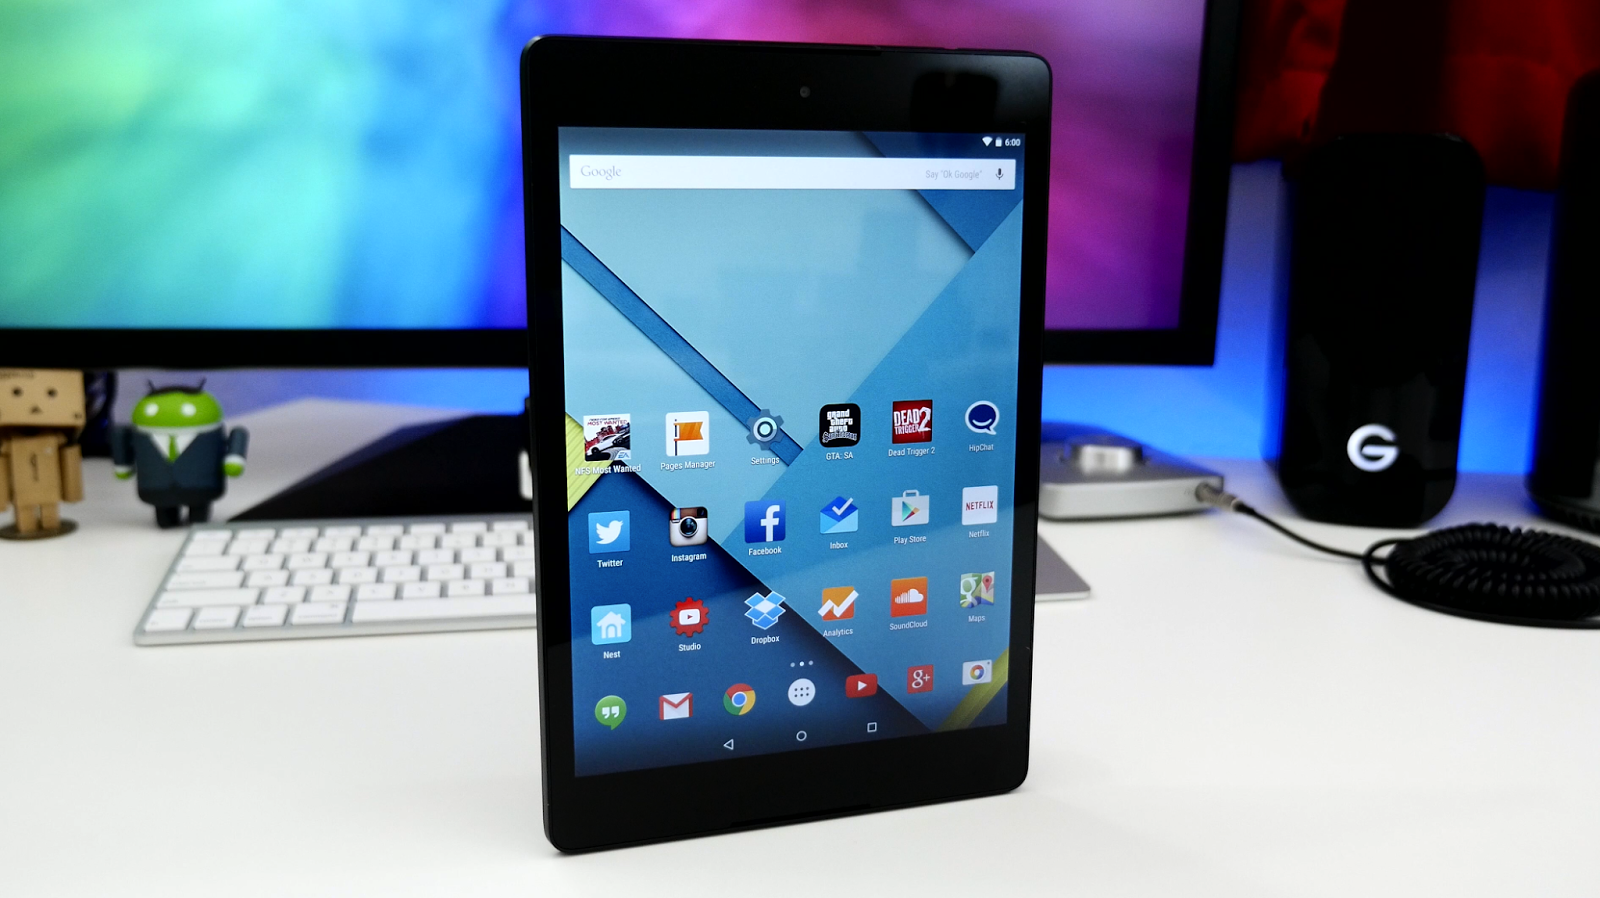 Google Nexus 9 LineageOS 15 ROM arrives with Android 8 0 Oreo